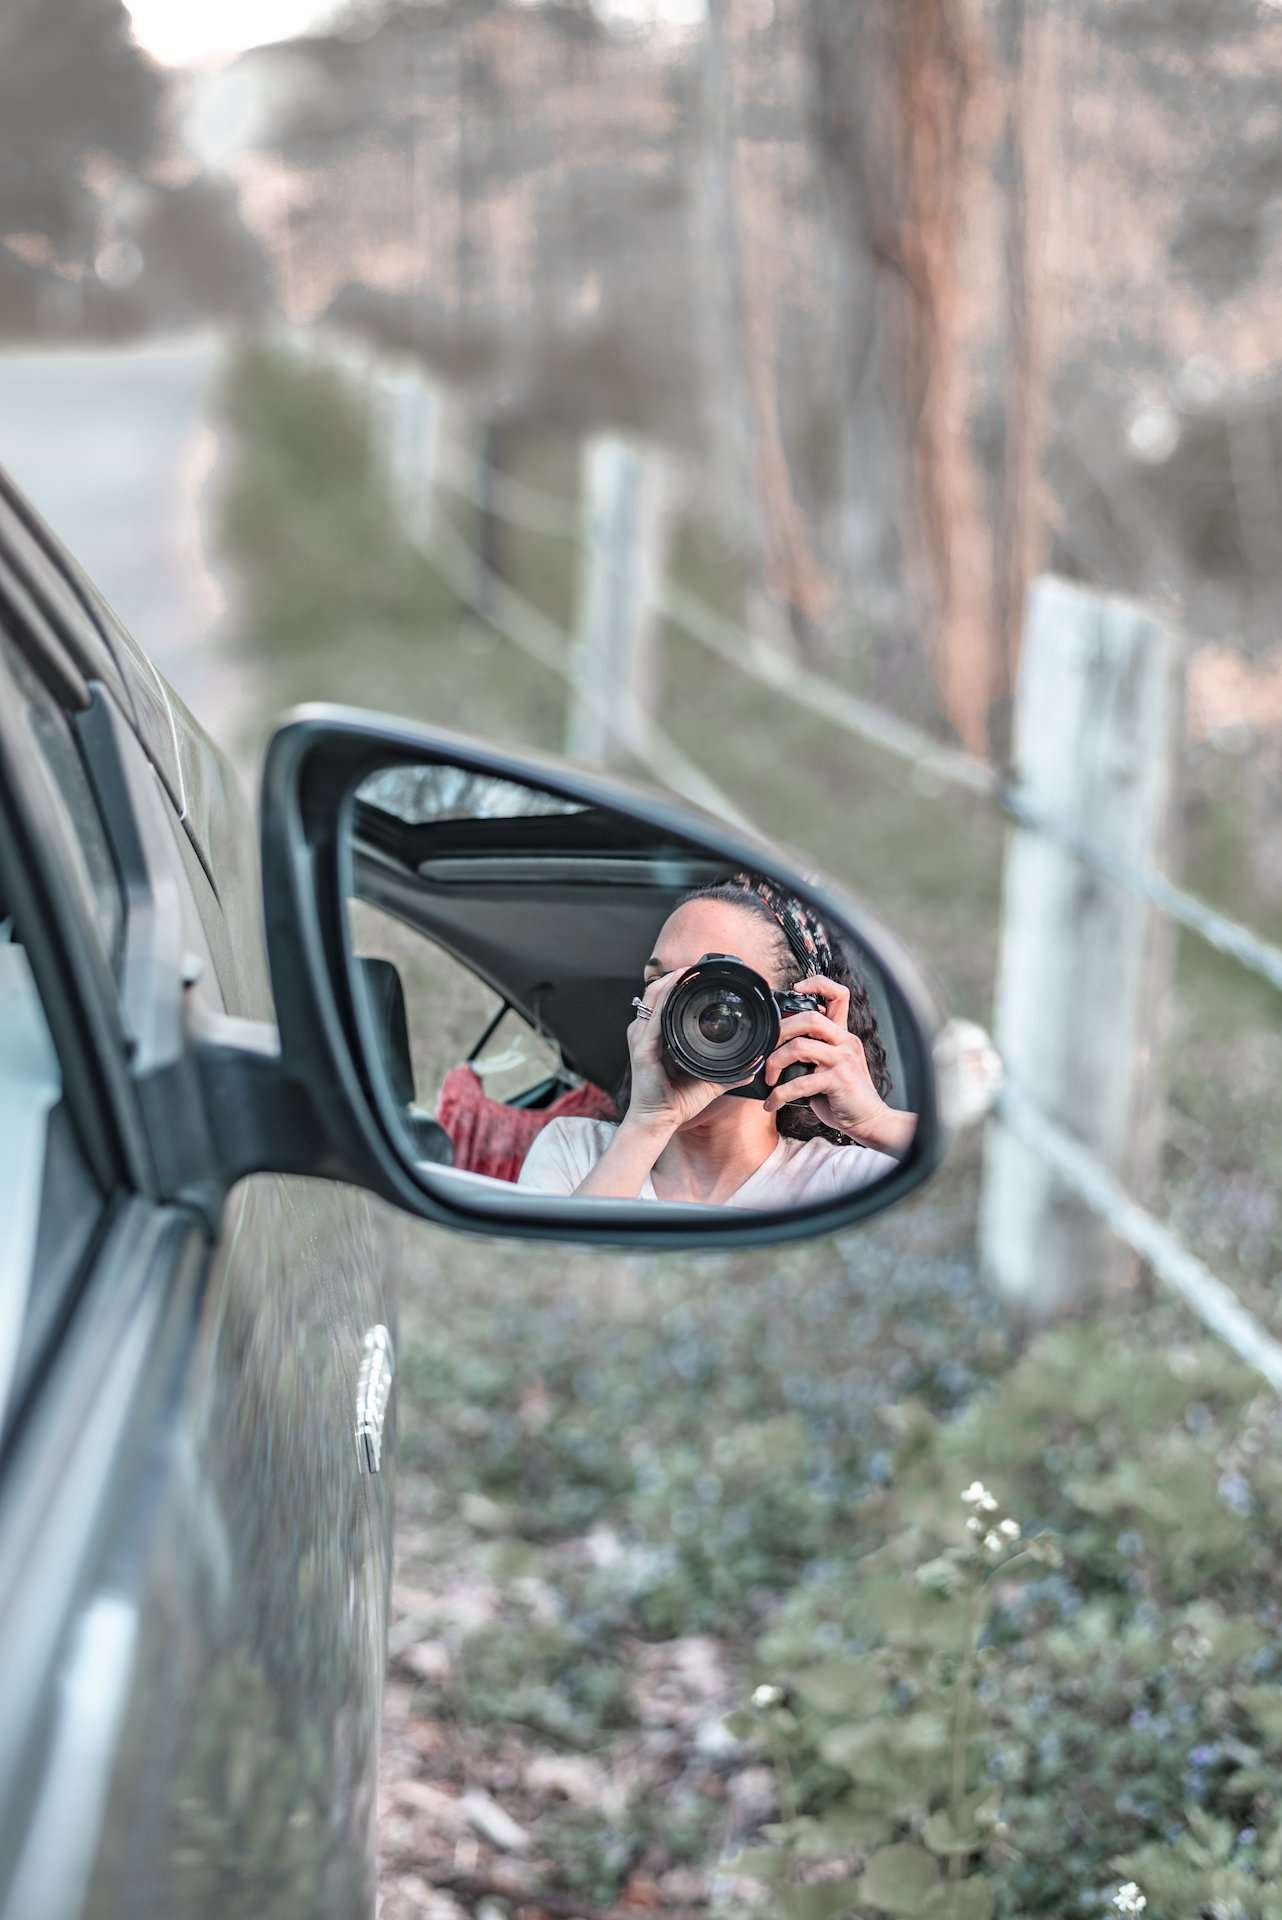 Taking photos on a road trip